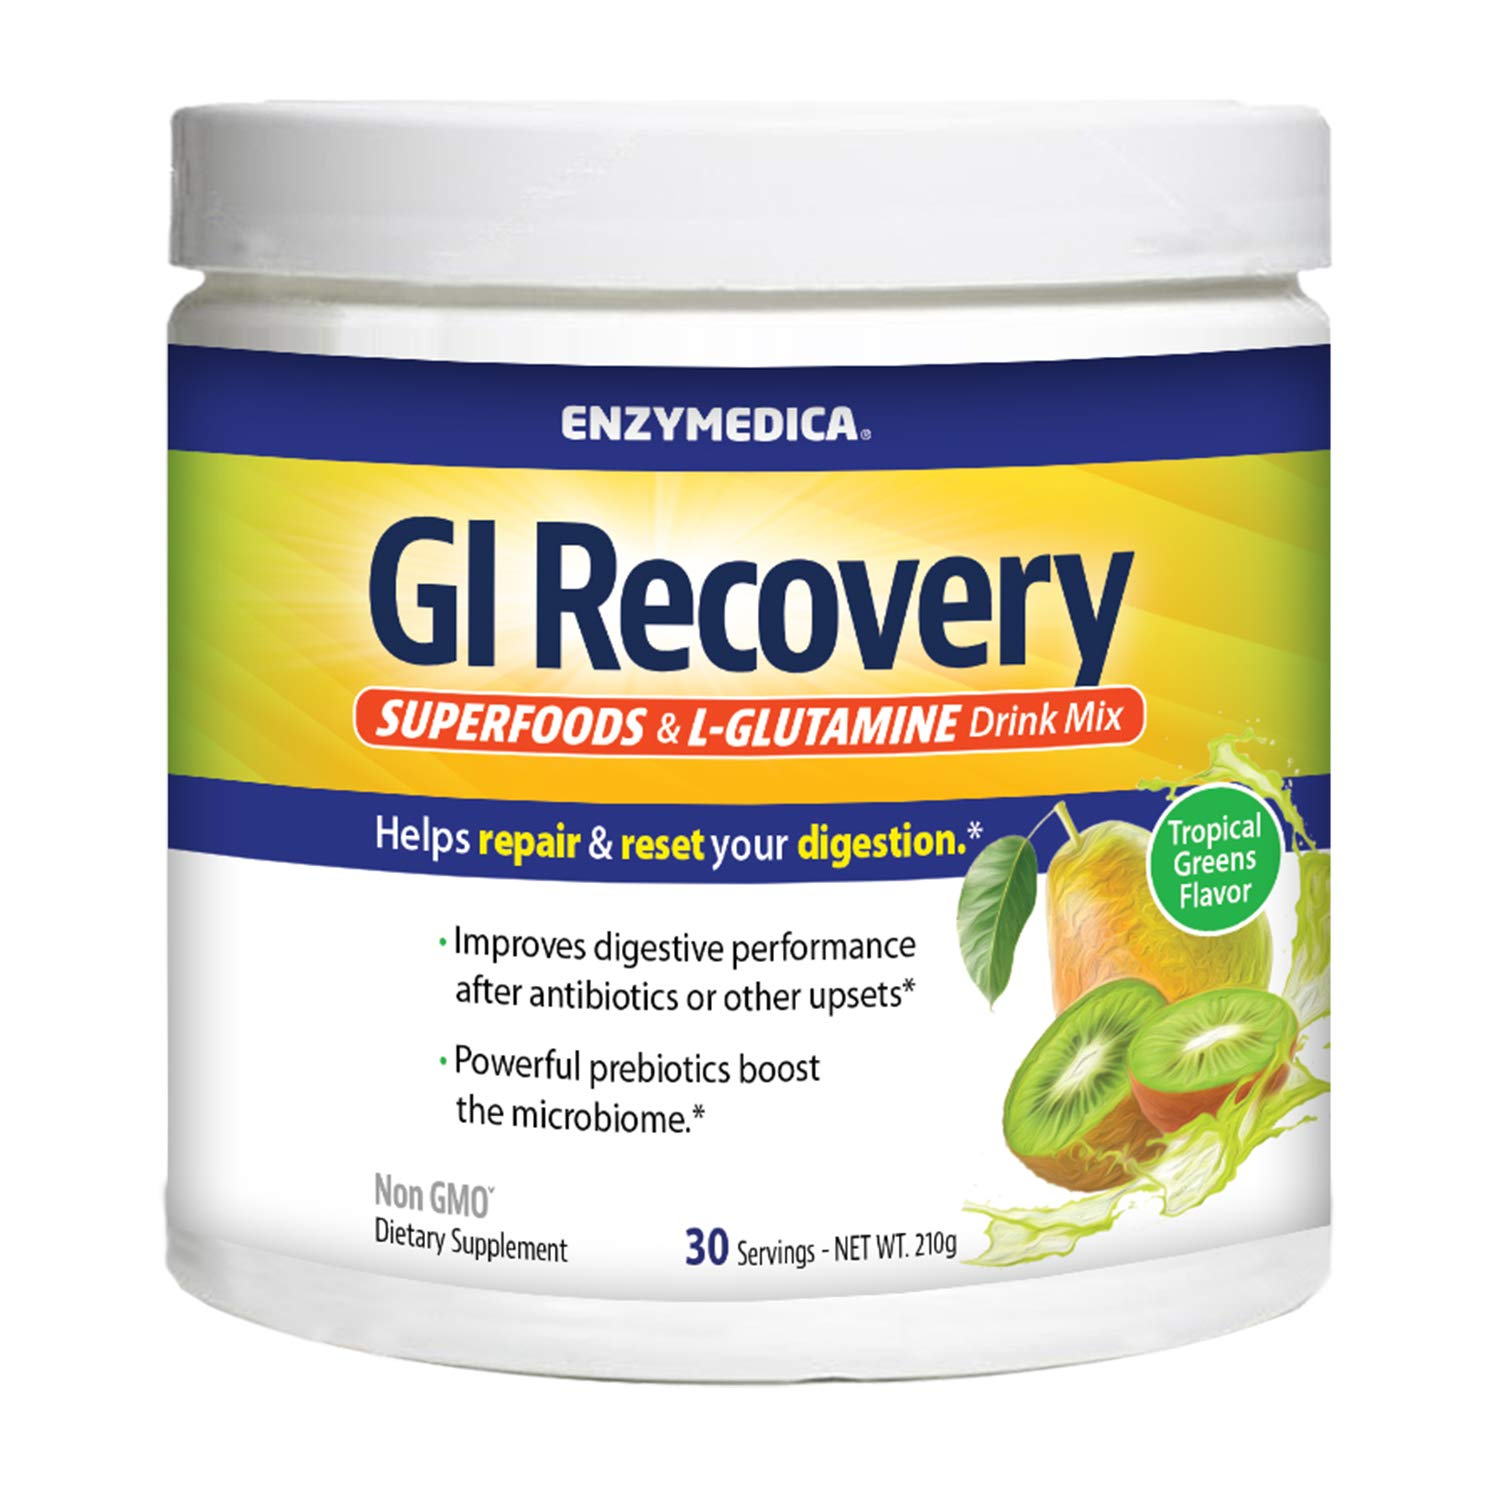 Enzymedica, GI Recovery Superfoods & Glutamine Drink Mix, 30 Servings which is more descriptive and reflects the title on the label by Enzymedica